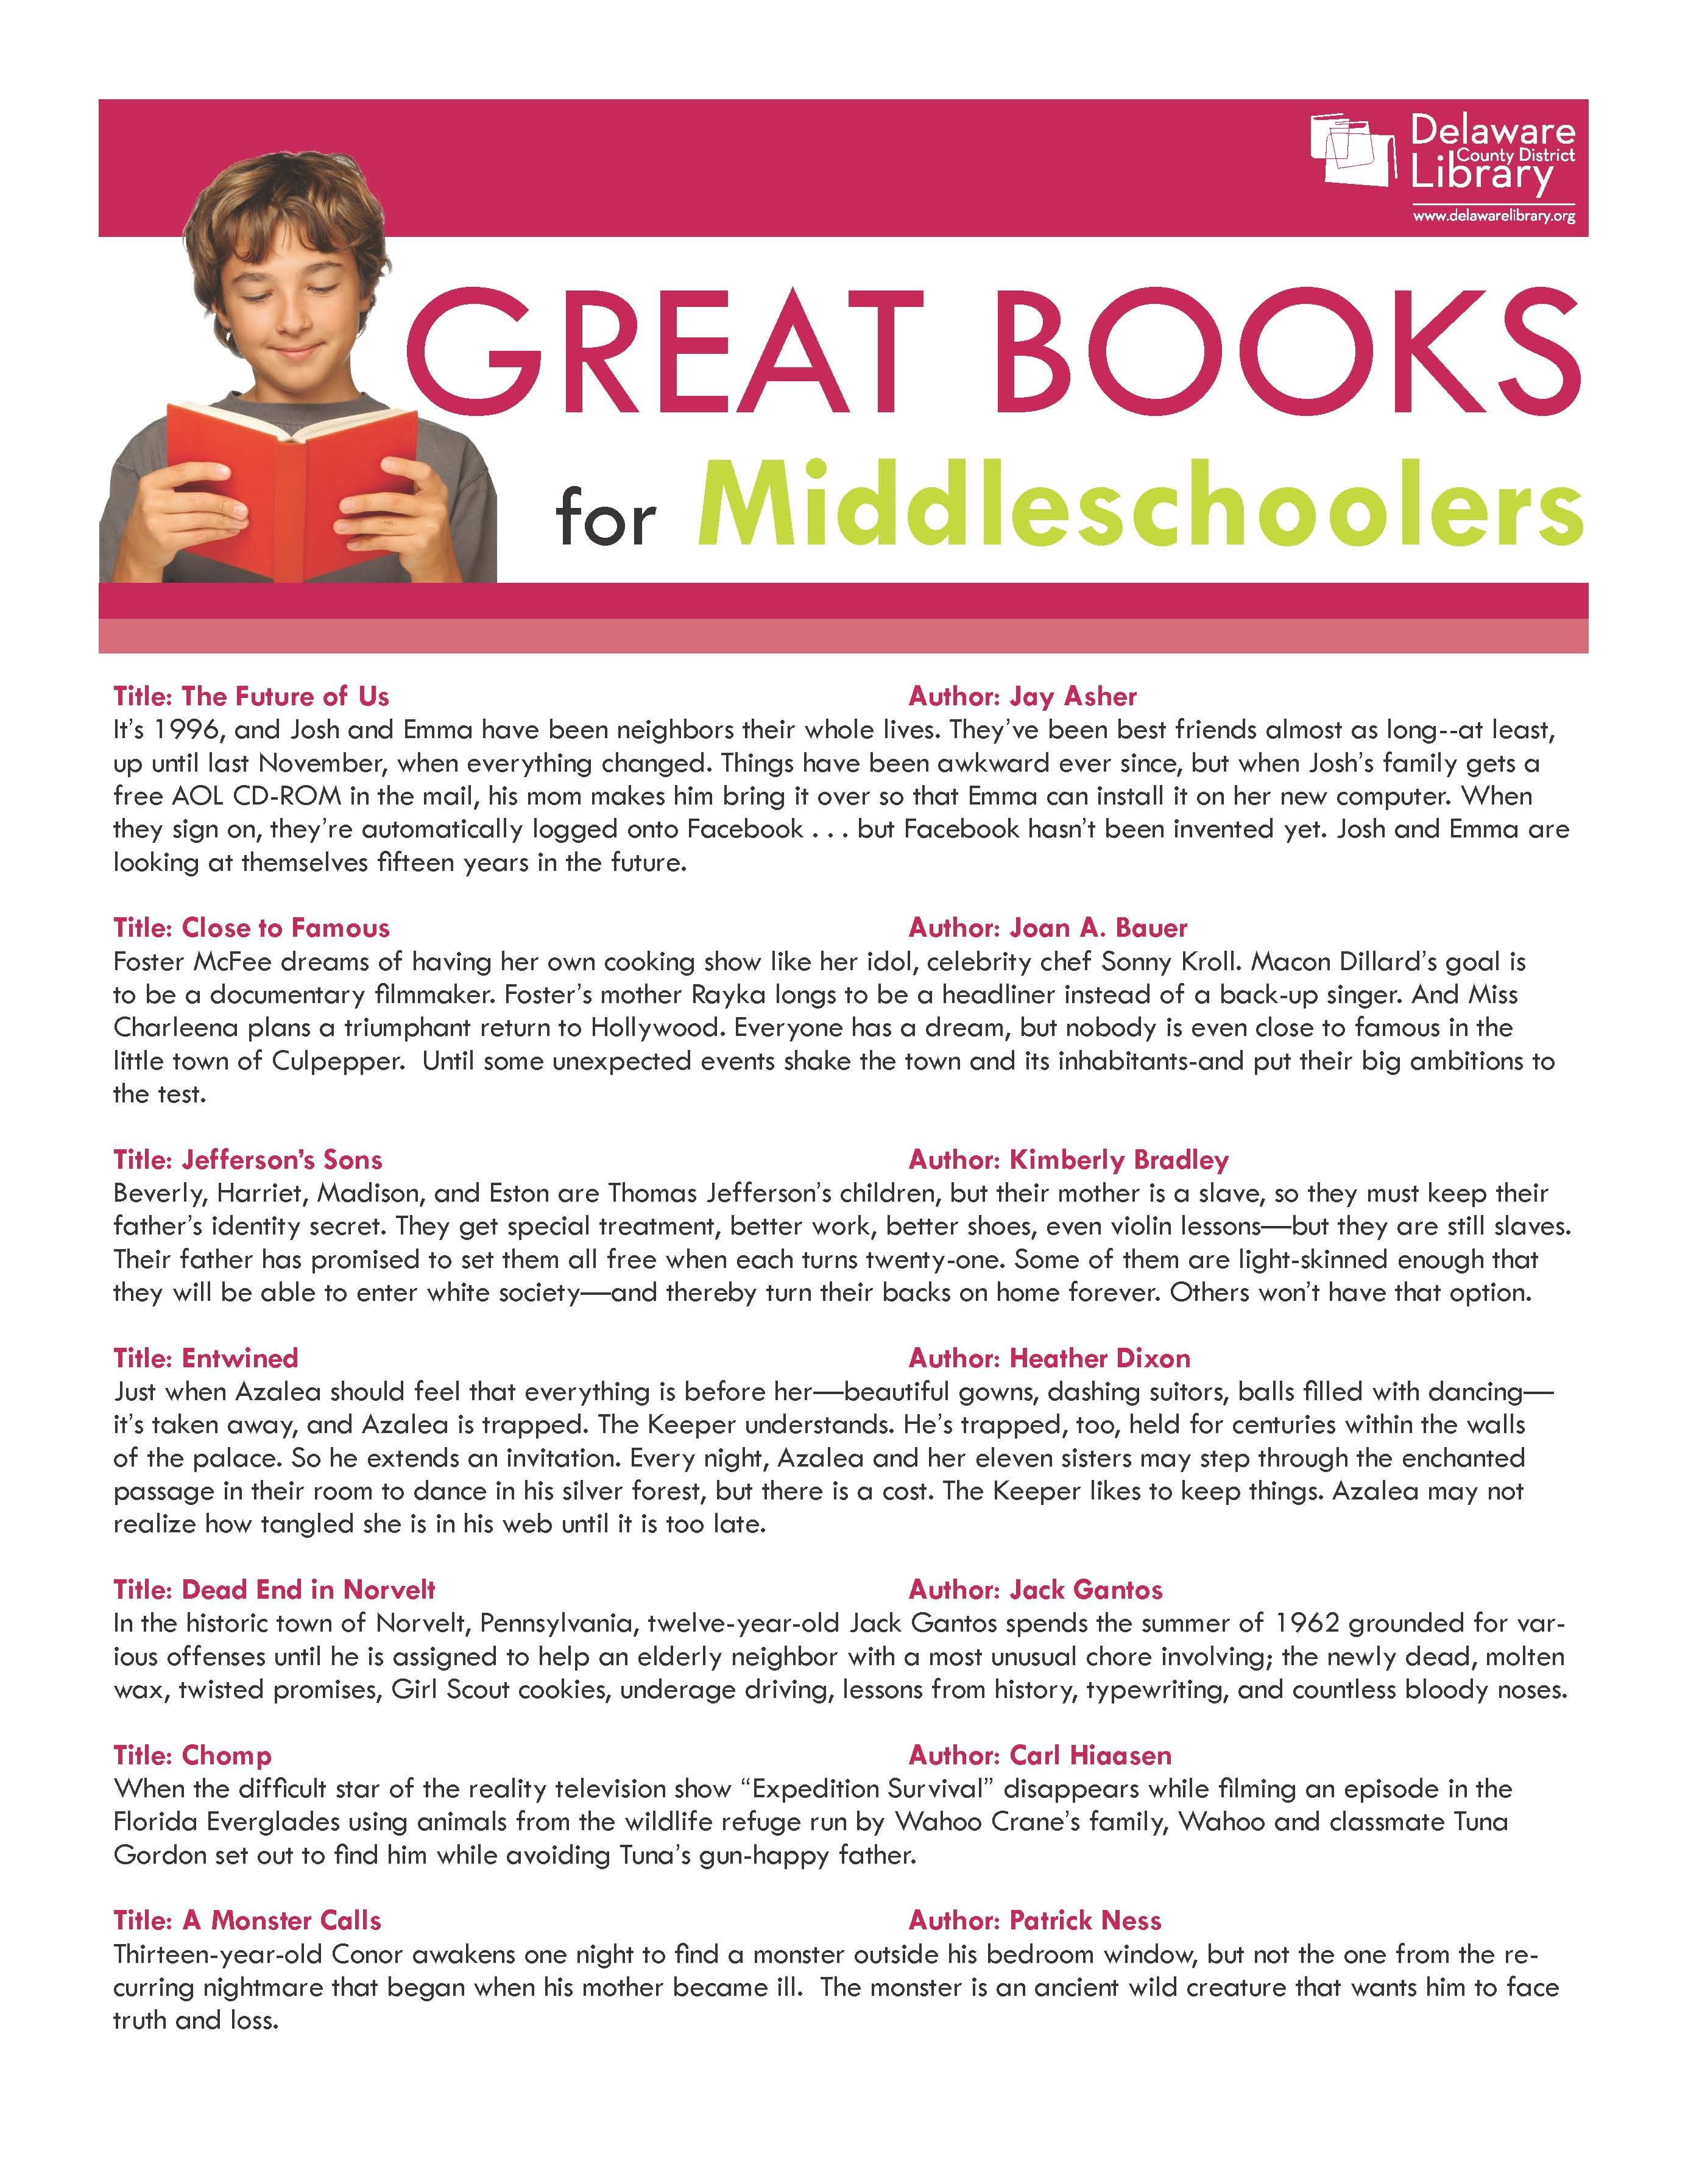 Great Books For Middleschoolers Lawarelibrary